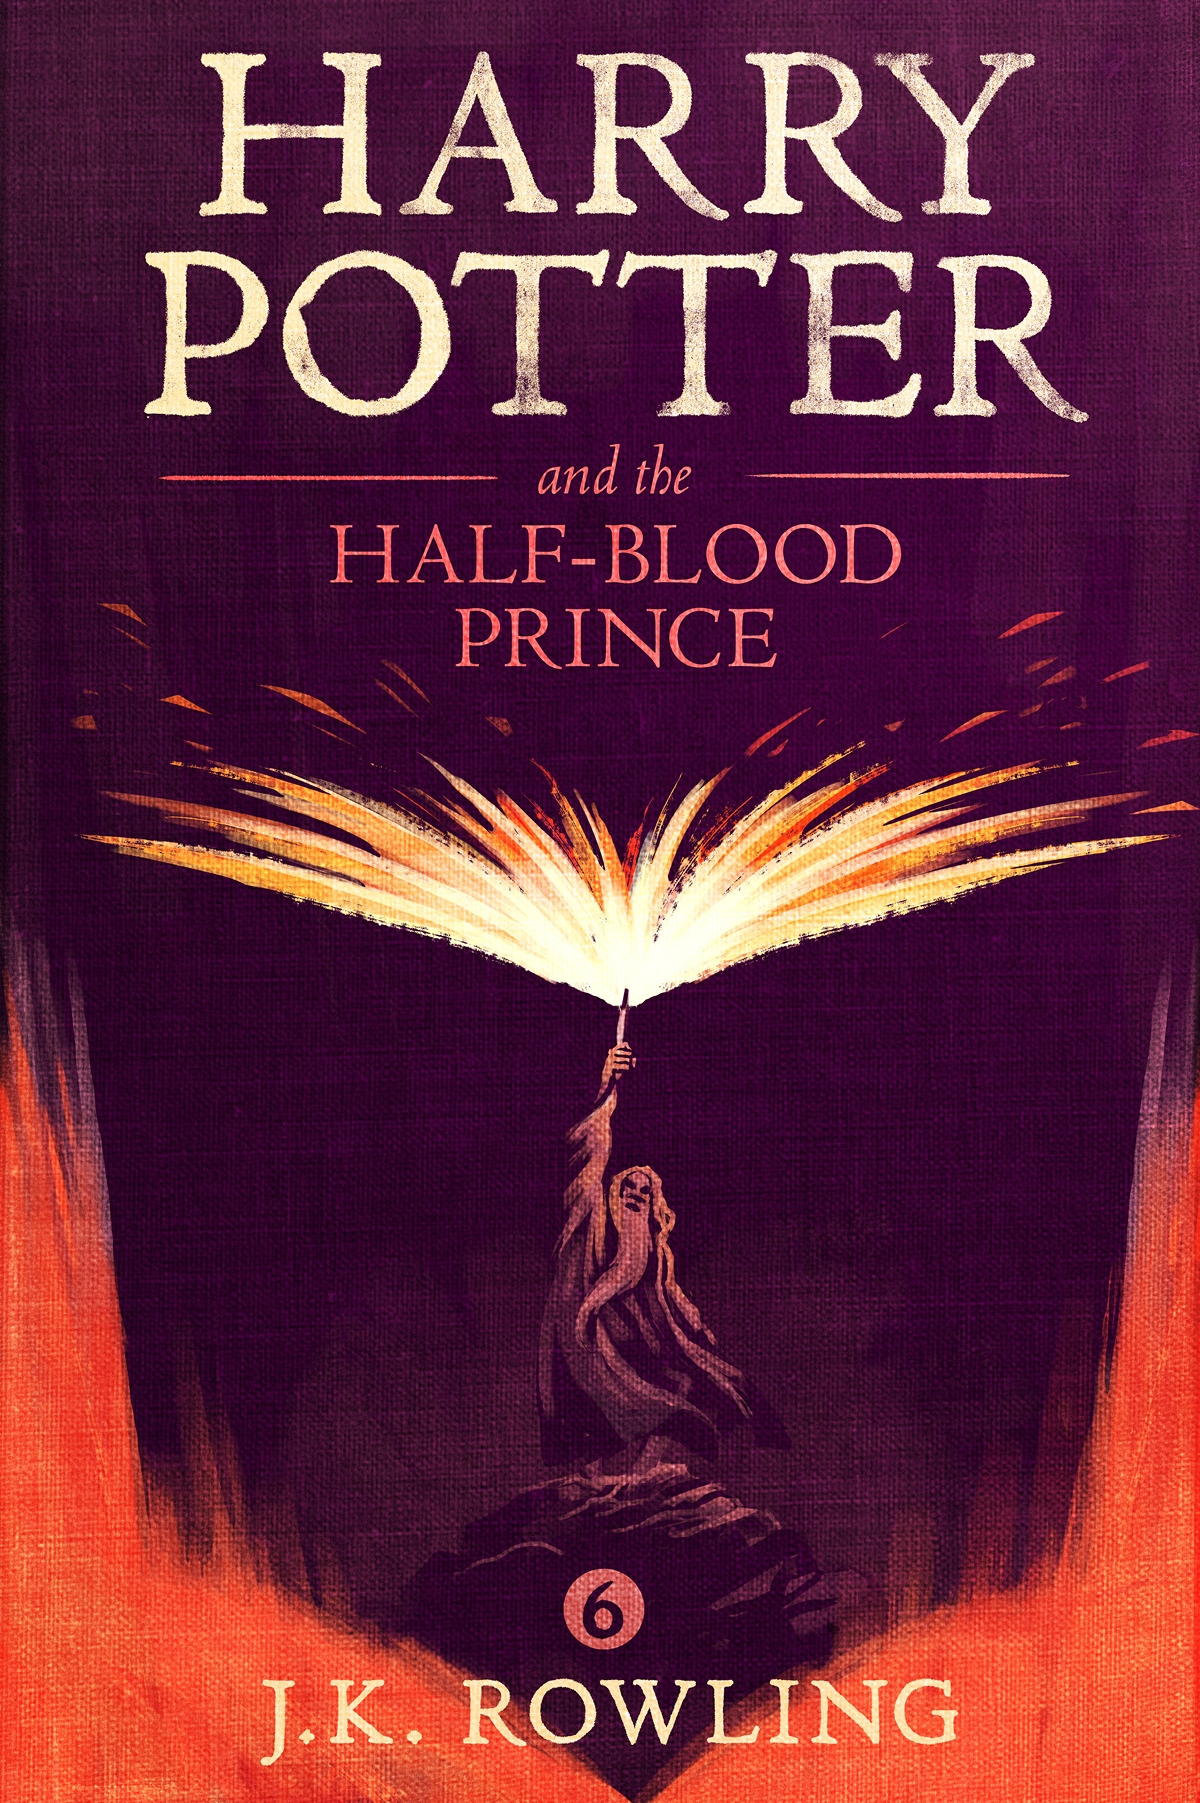 Harry Potter and the Half-Blood Prince. Джоан Кэтлин Роулинг